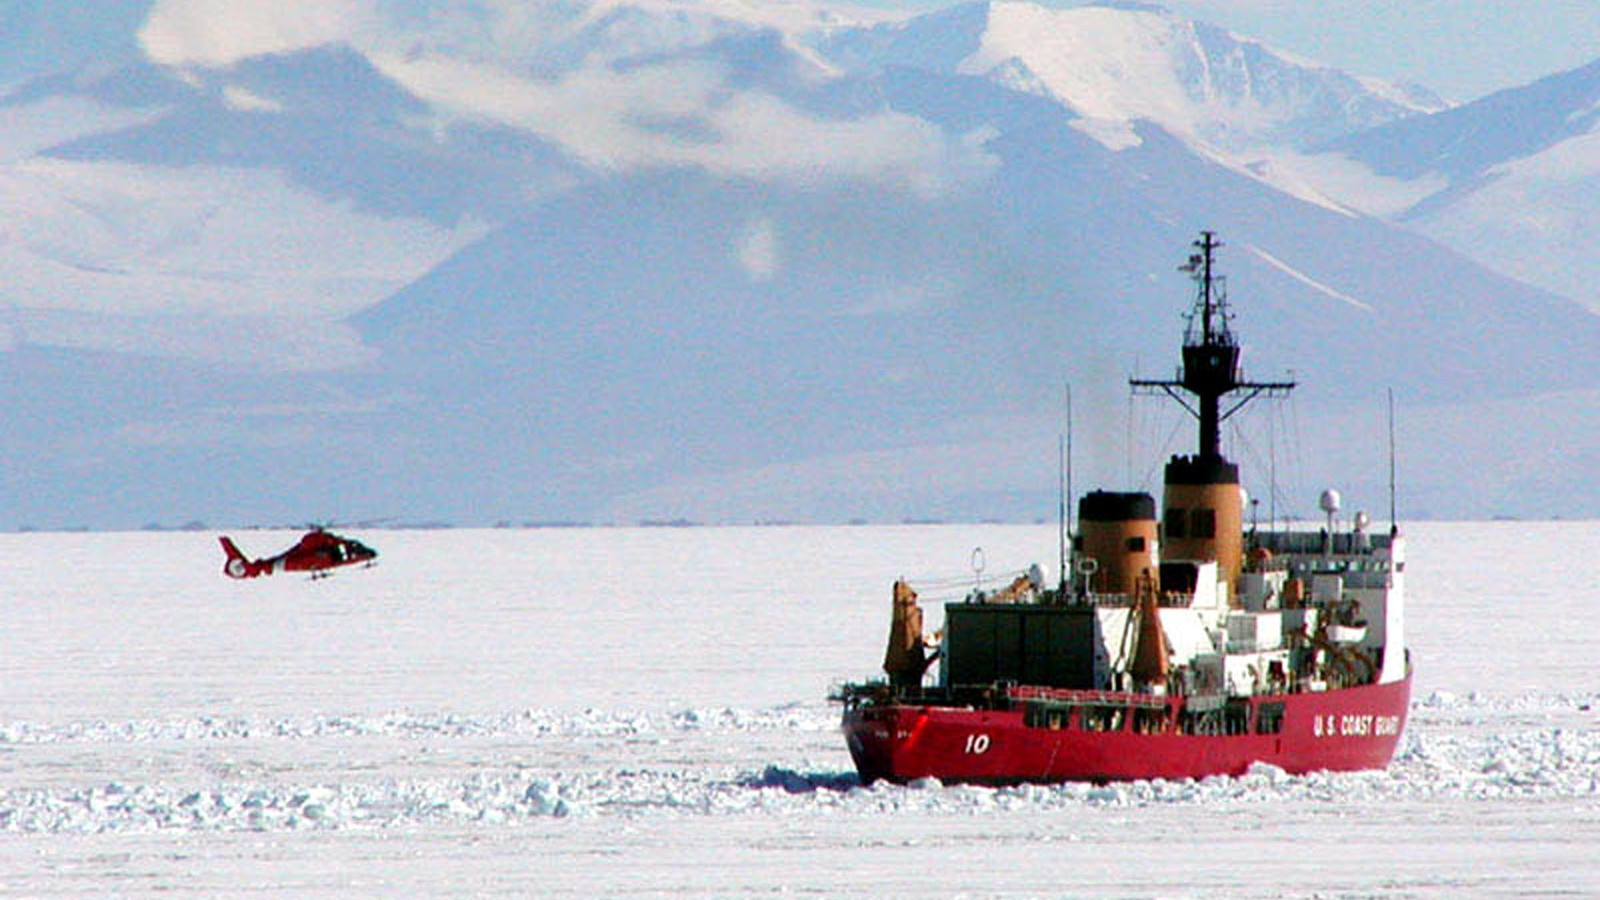 Global Warming Means the US Actually Needs More Icebreakers